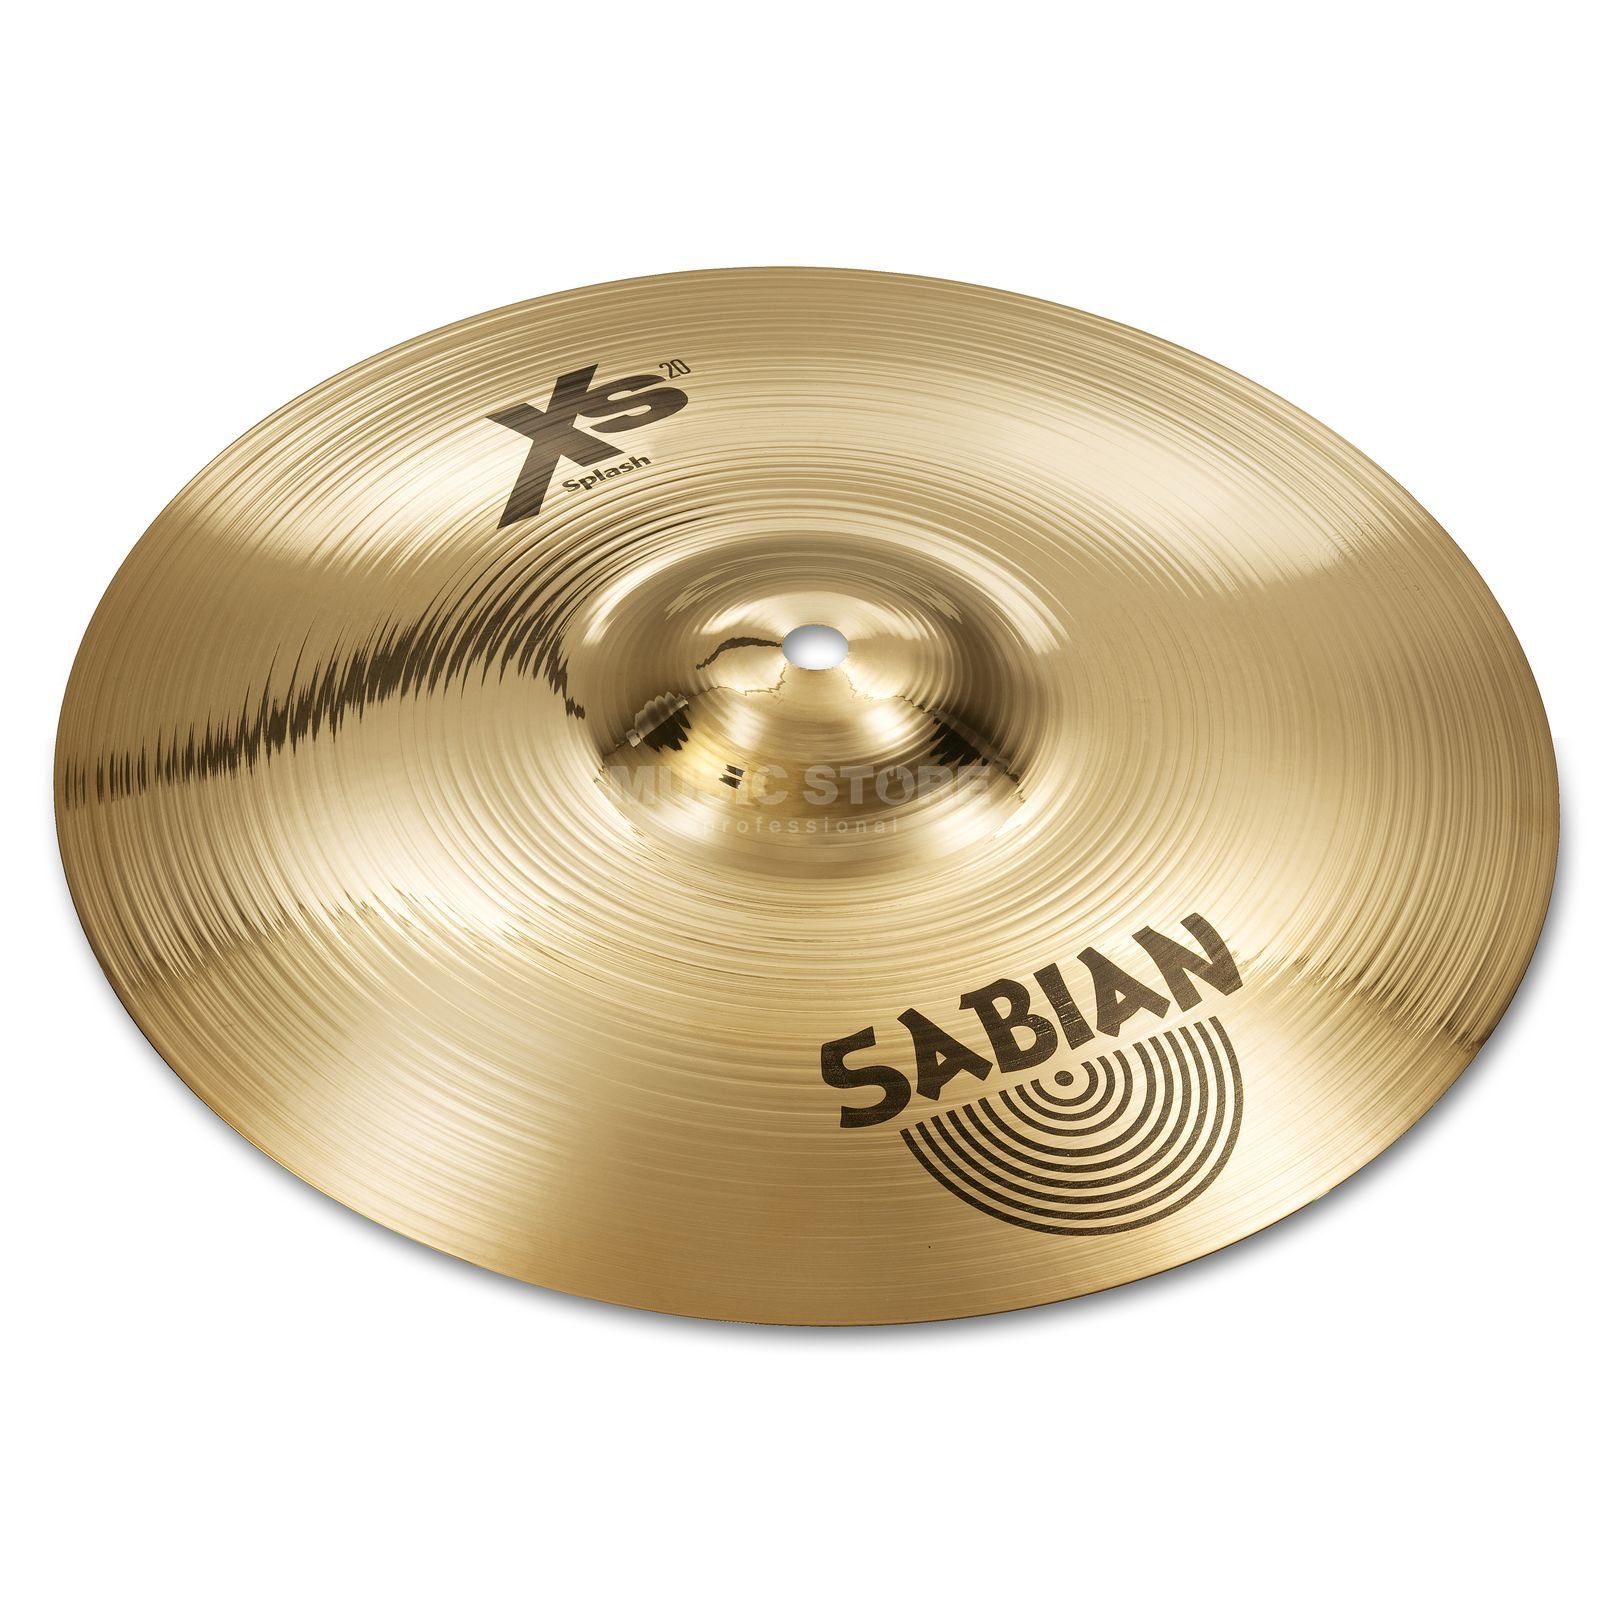 "Sabian XS20 Splash 10"", finition brillante Image du produit"